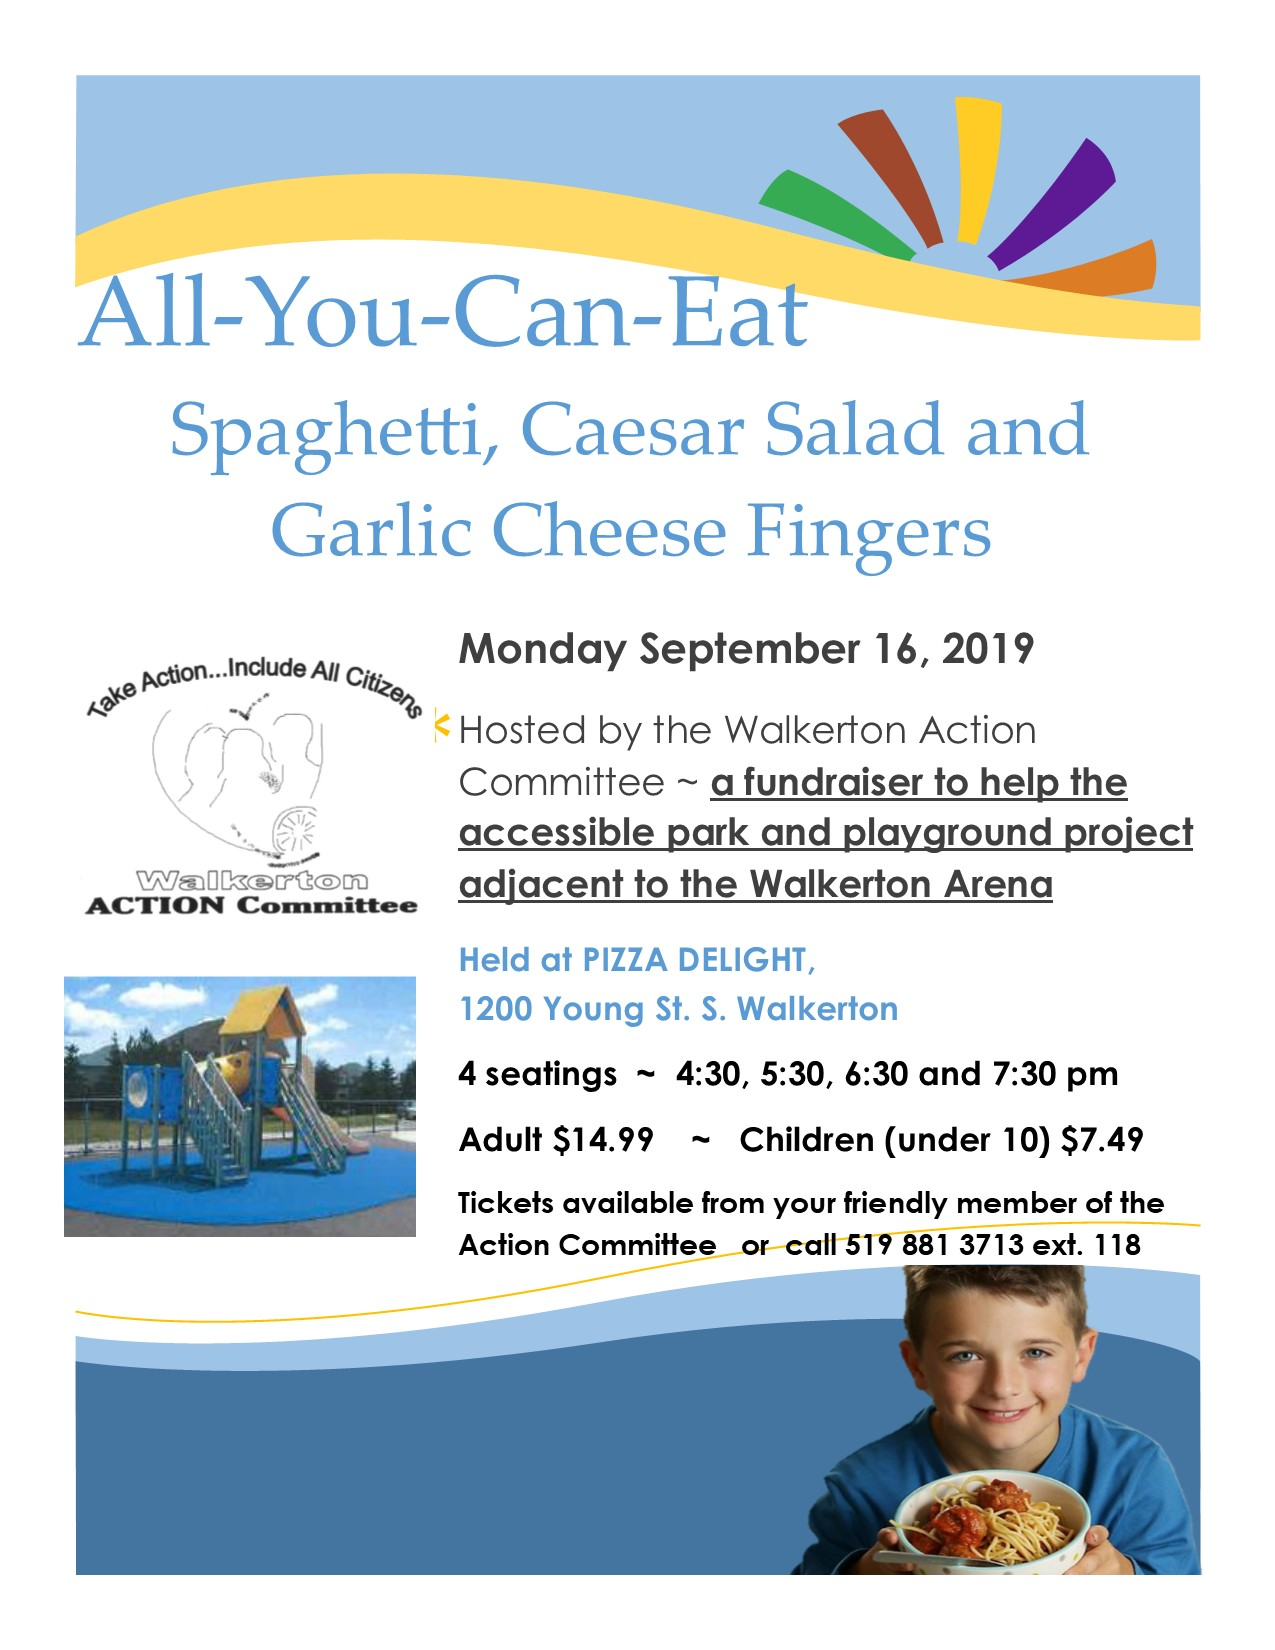 poster with photo of a playground and spaghetti and Action Committee logo